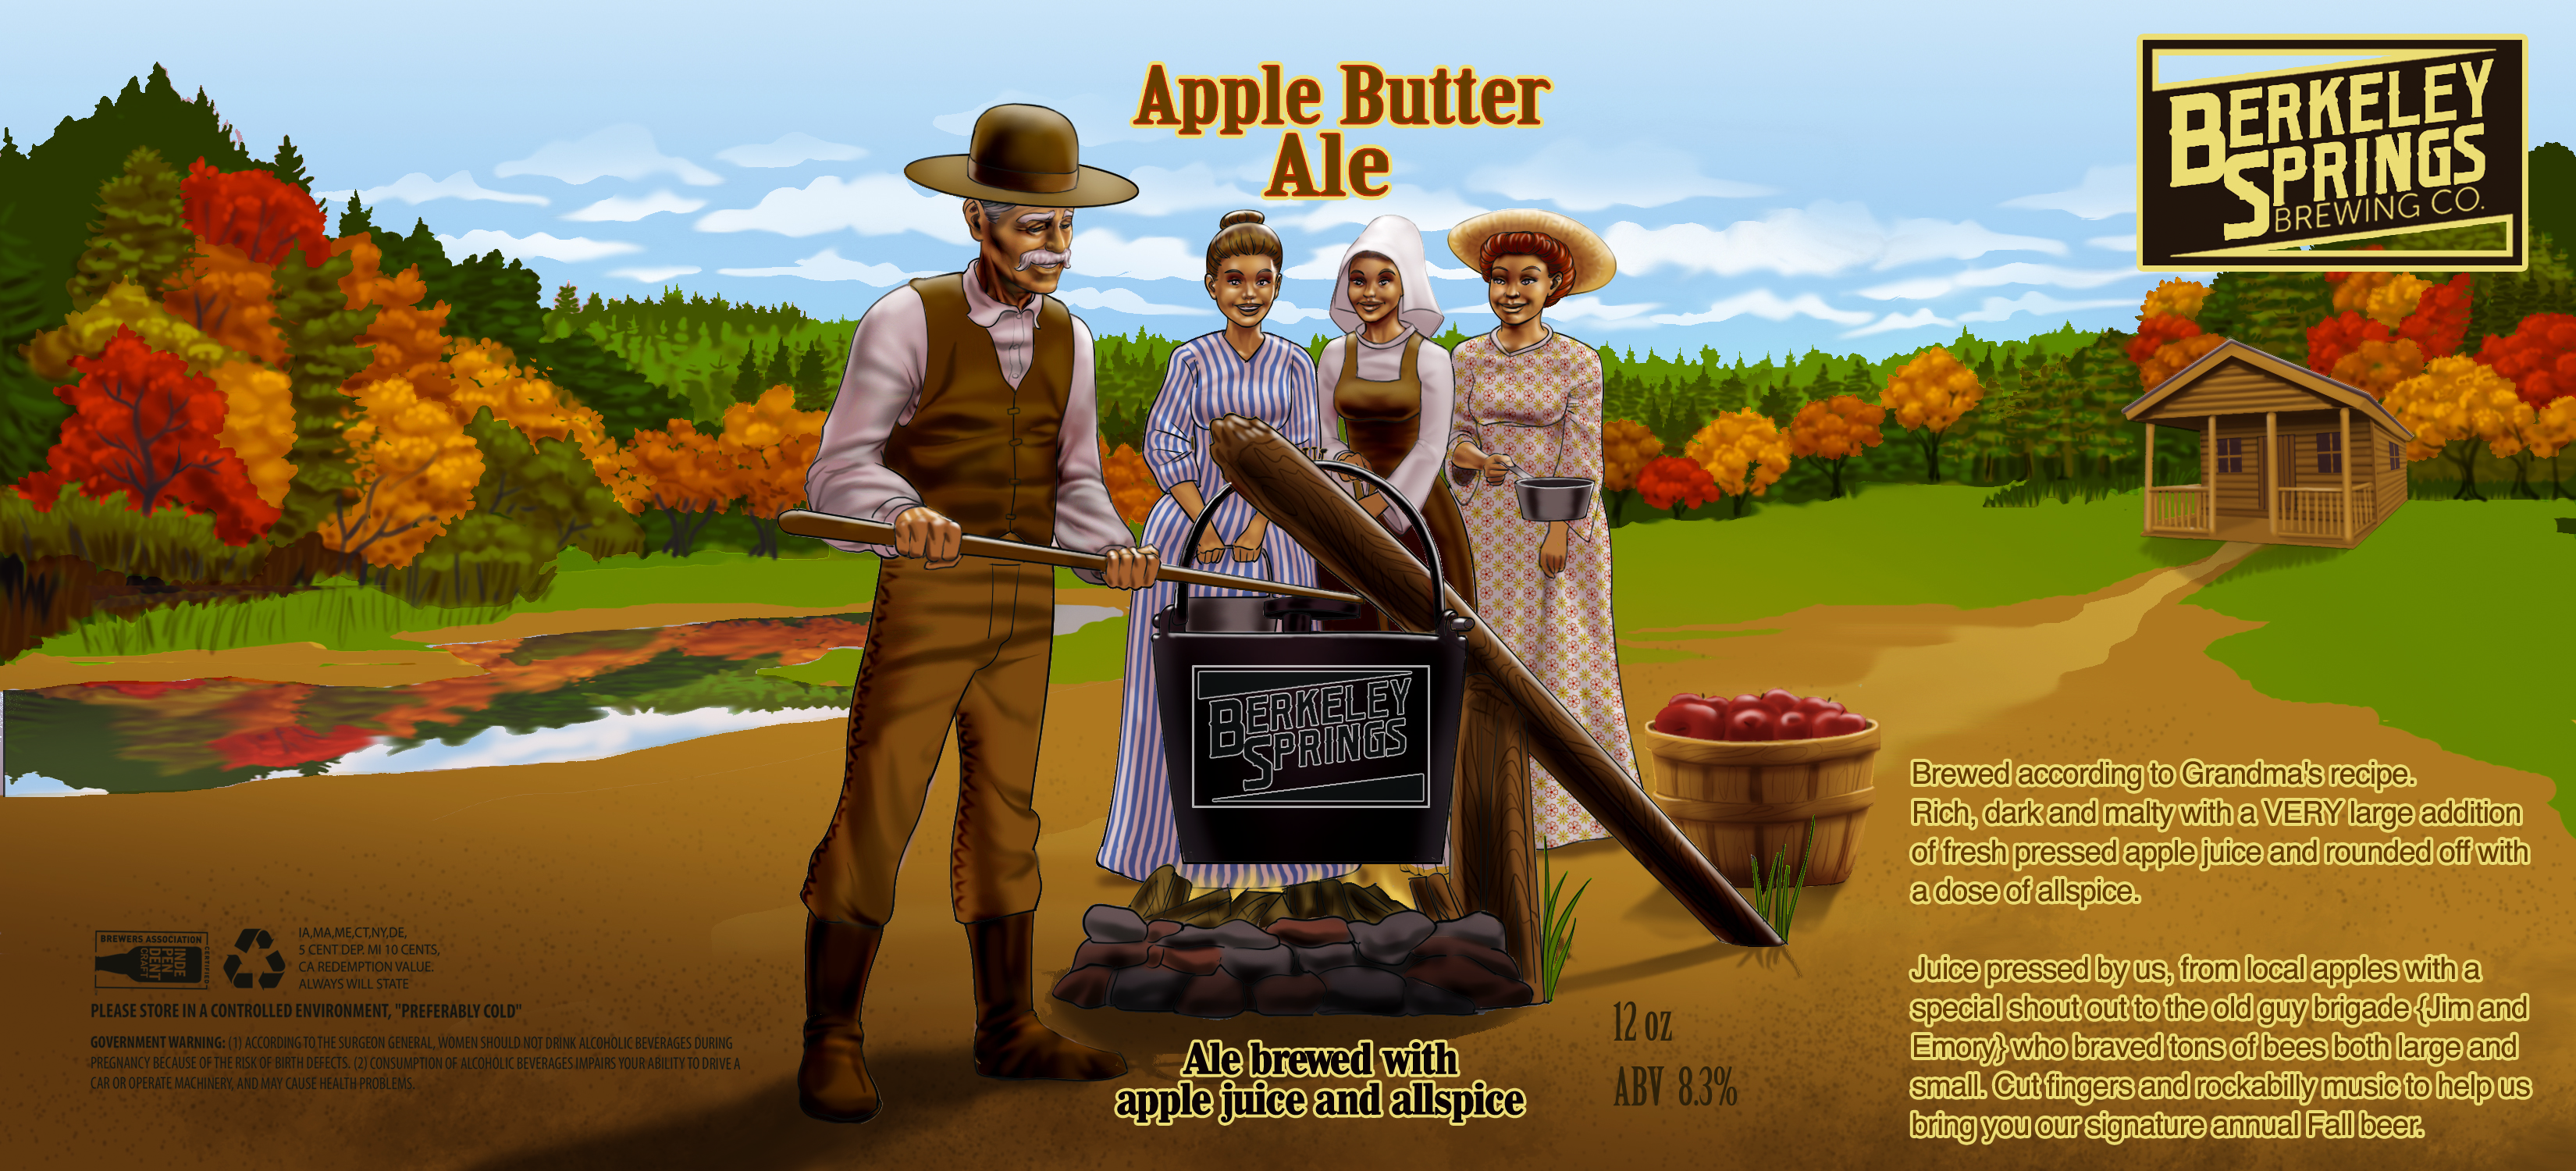 Apple Butter Ale